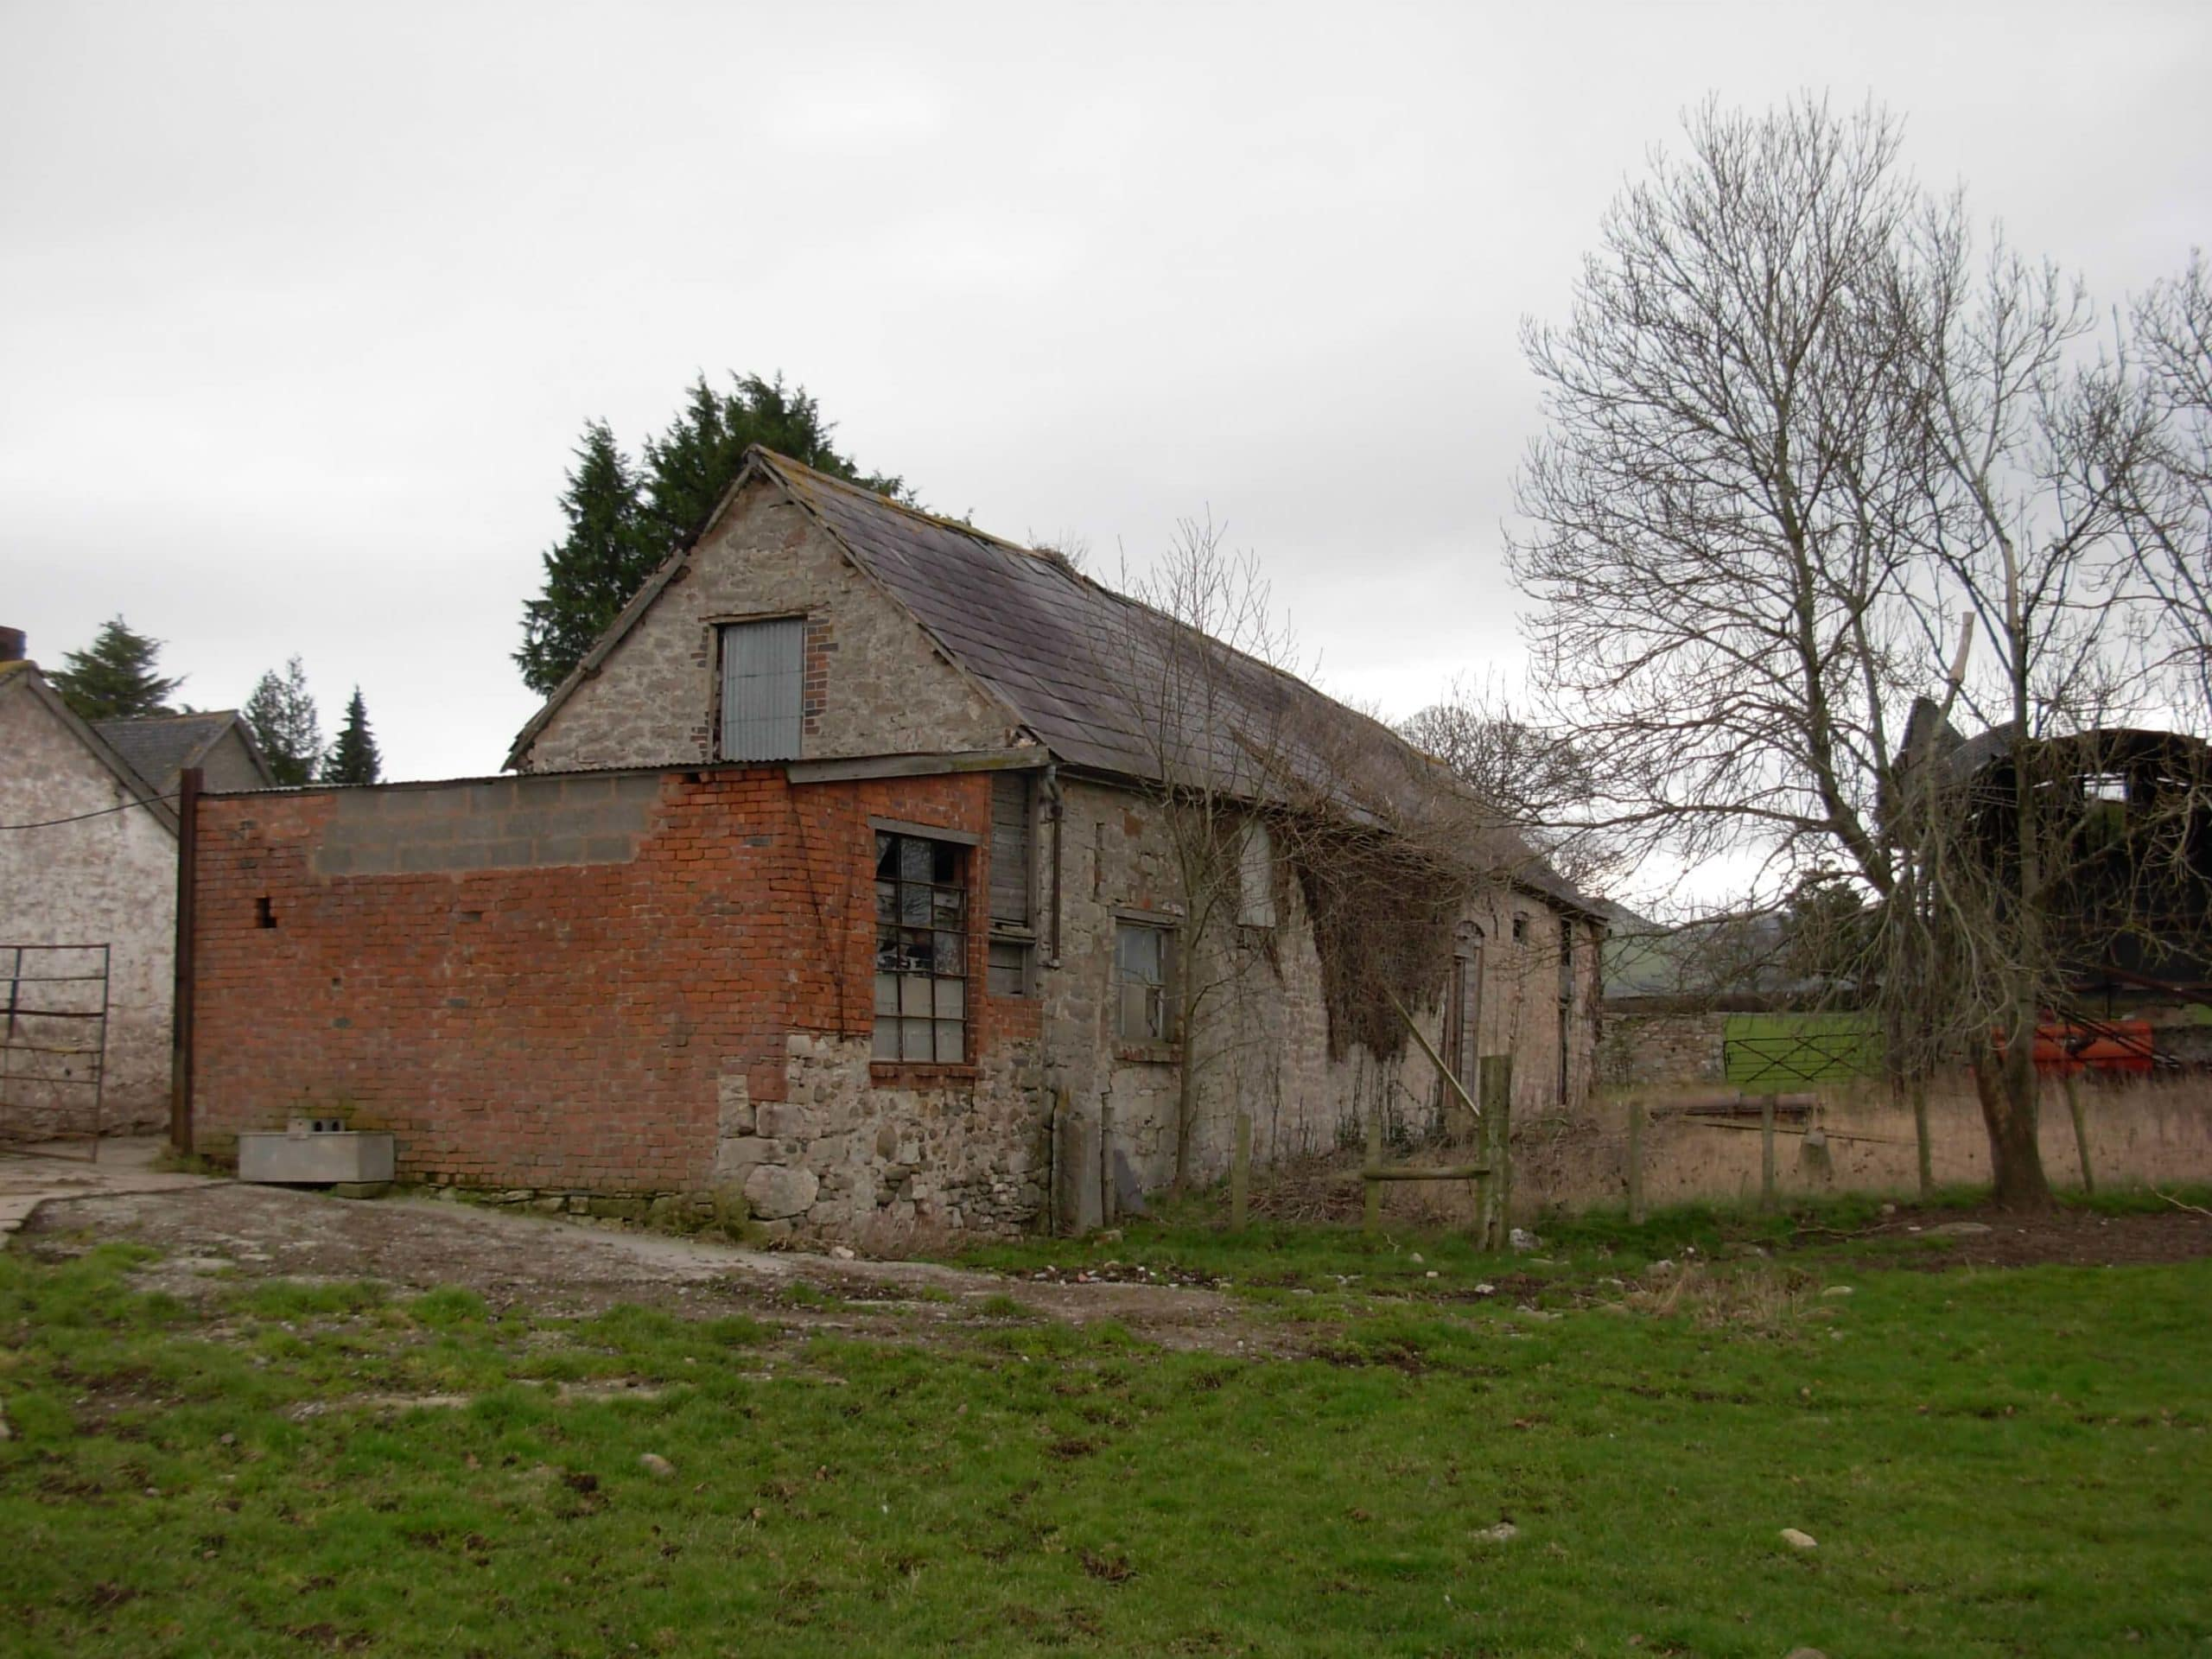 The Longbarn before renovation